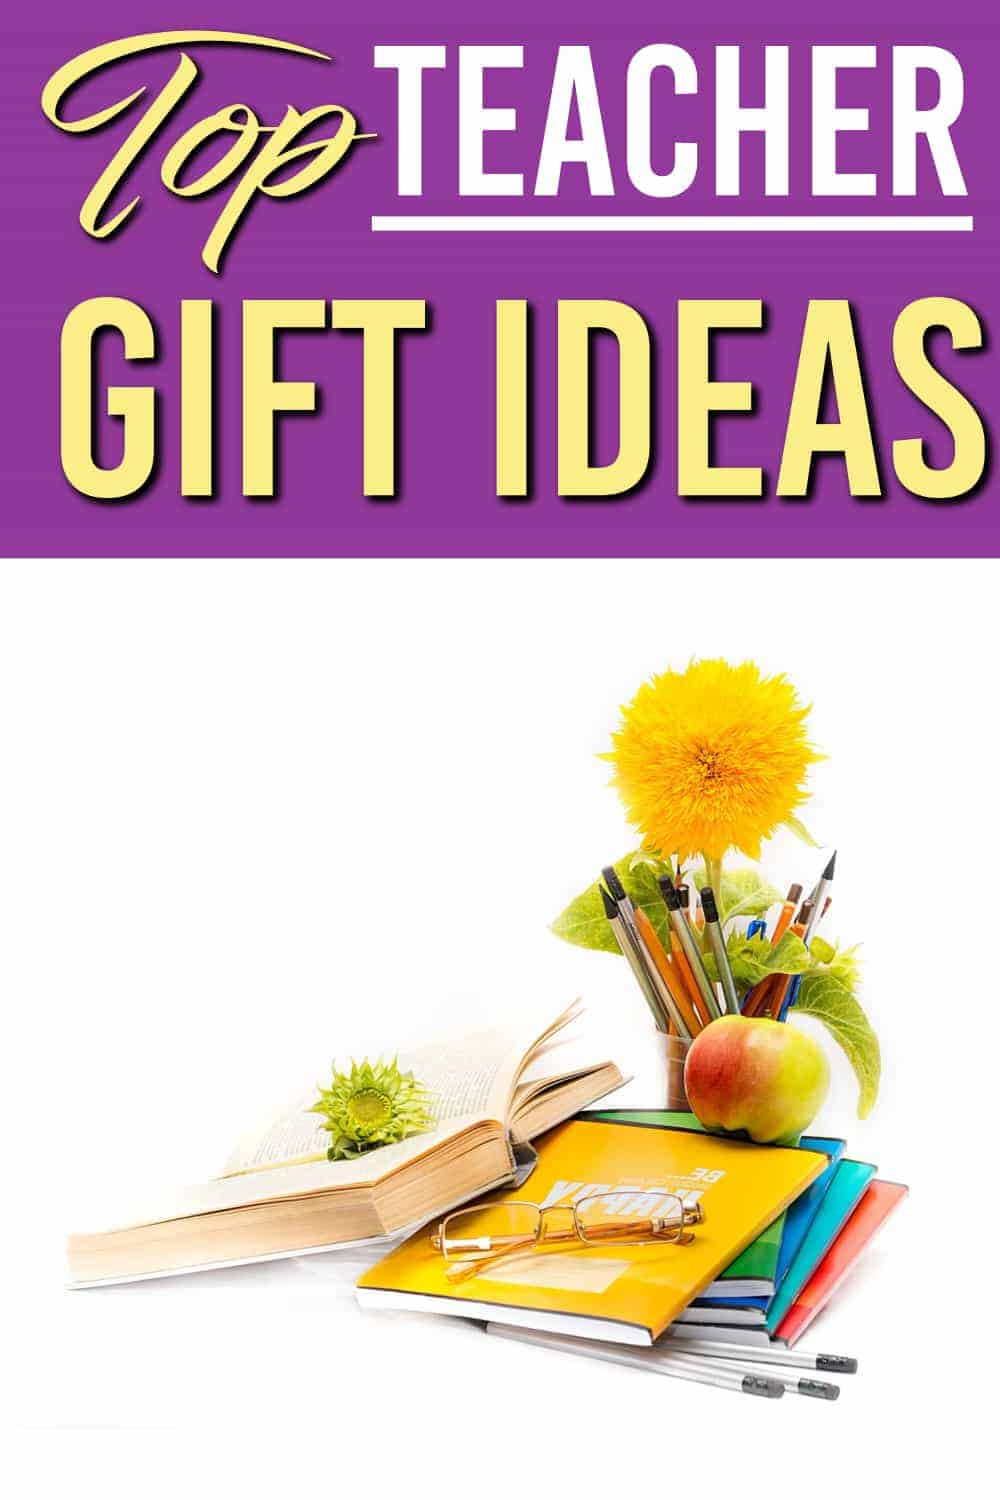 Looking for some unique gift ideas that you can give your childs' teacher this year. Here are some great ideas plus some faithful standard gifts that you can buy to show your teacher how great they were this year. | Teacher gifts | Gifts ideas for teacher|